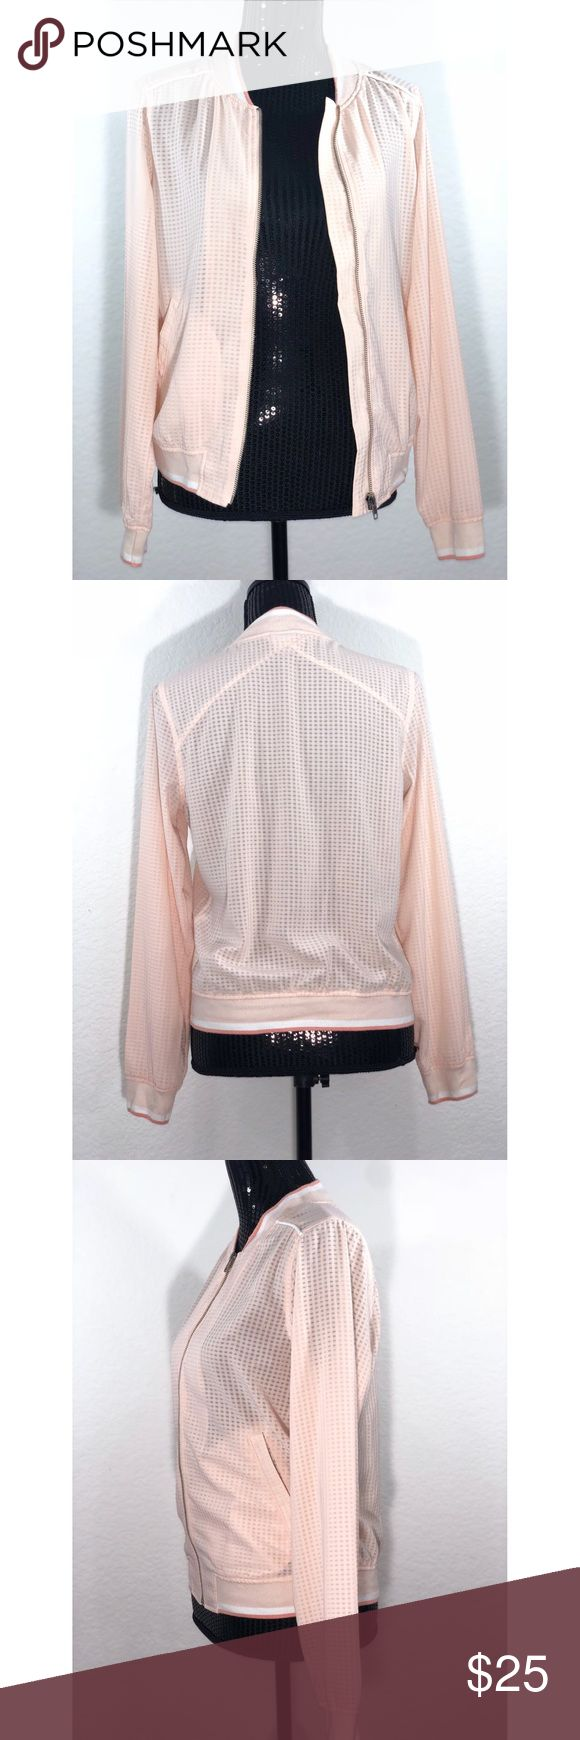 """Pre-Owned Women's Bomber Jacket - Merona Peach S The soft Women's Bomber Jacket by Merona in Peach gives you versatile femininity in a delicate hue. Stay comfortable and fresh-looking in this women s lightweight jacket.  Approximate Measurements Length: 21.5"""" Sleeves: 26"""" Merona Jackets & Coats"""